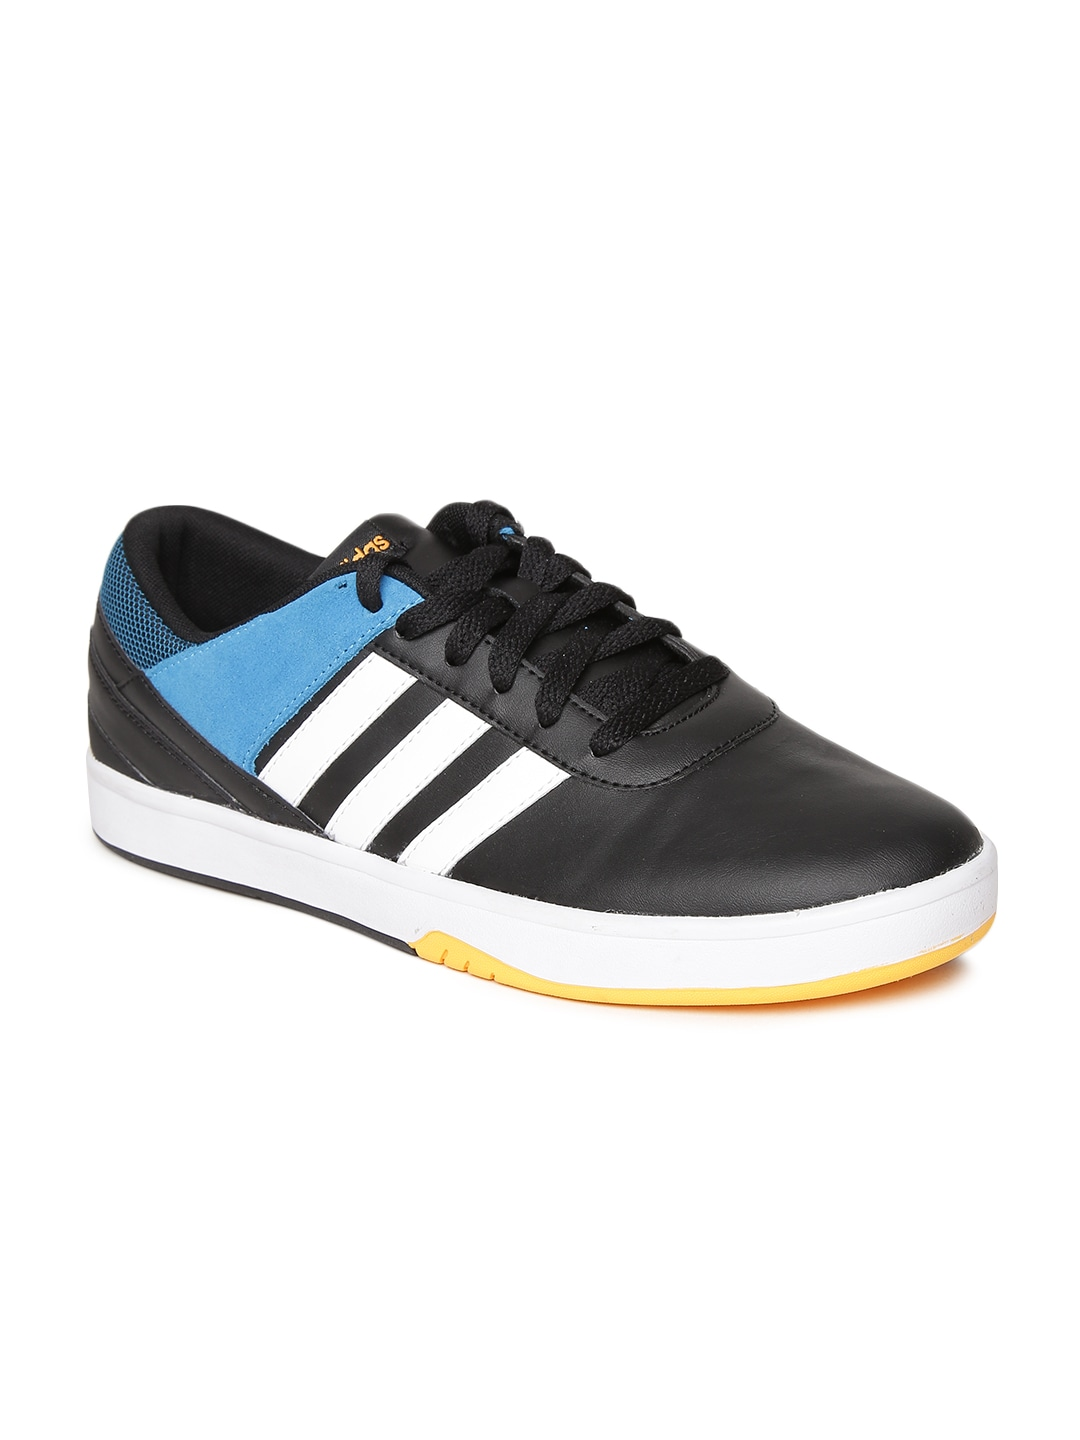 online retailer 8db1e 89a3e ireland adidas blue gold mens originals suede shoes . c741b c9cb3  usa adidas  neo men park st kflip sneakers price in india b5a1c 1d15c